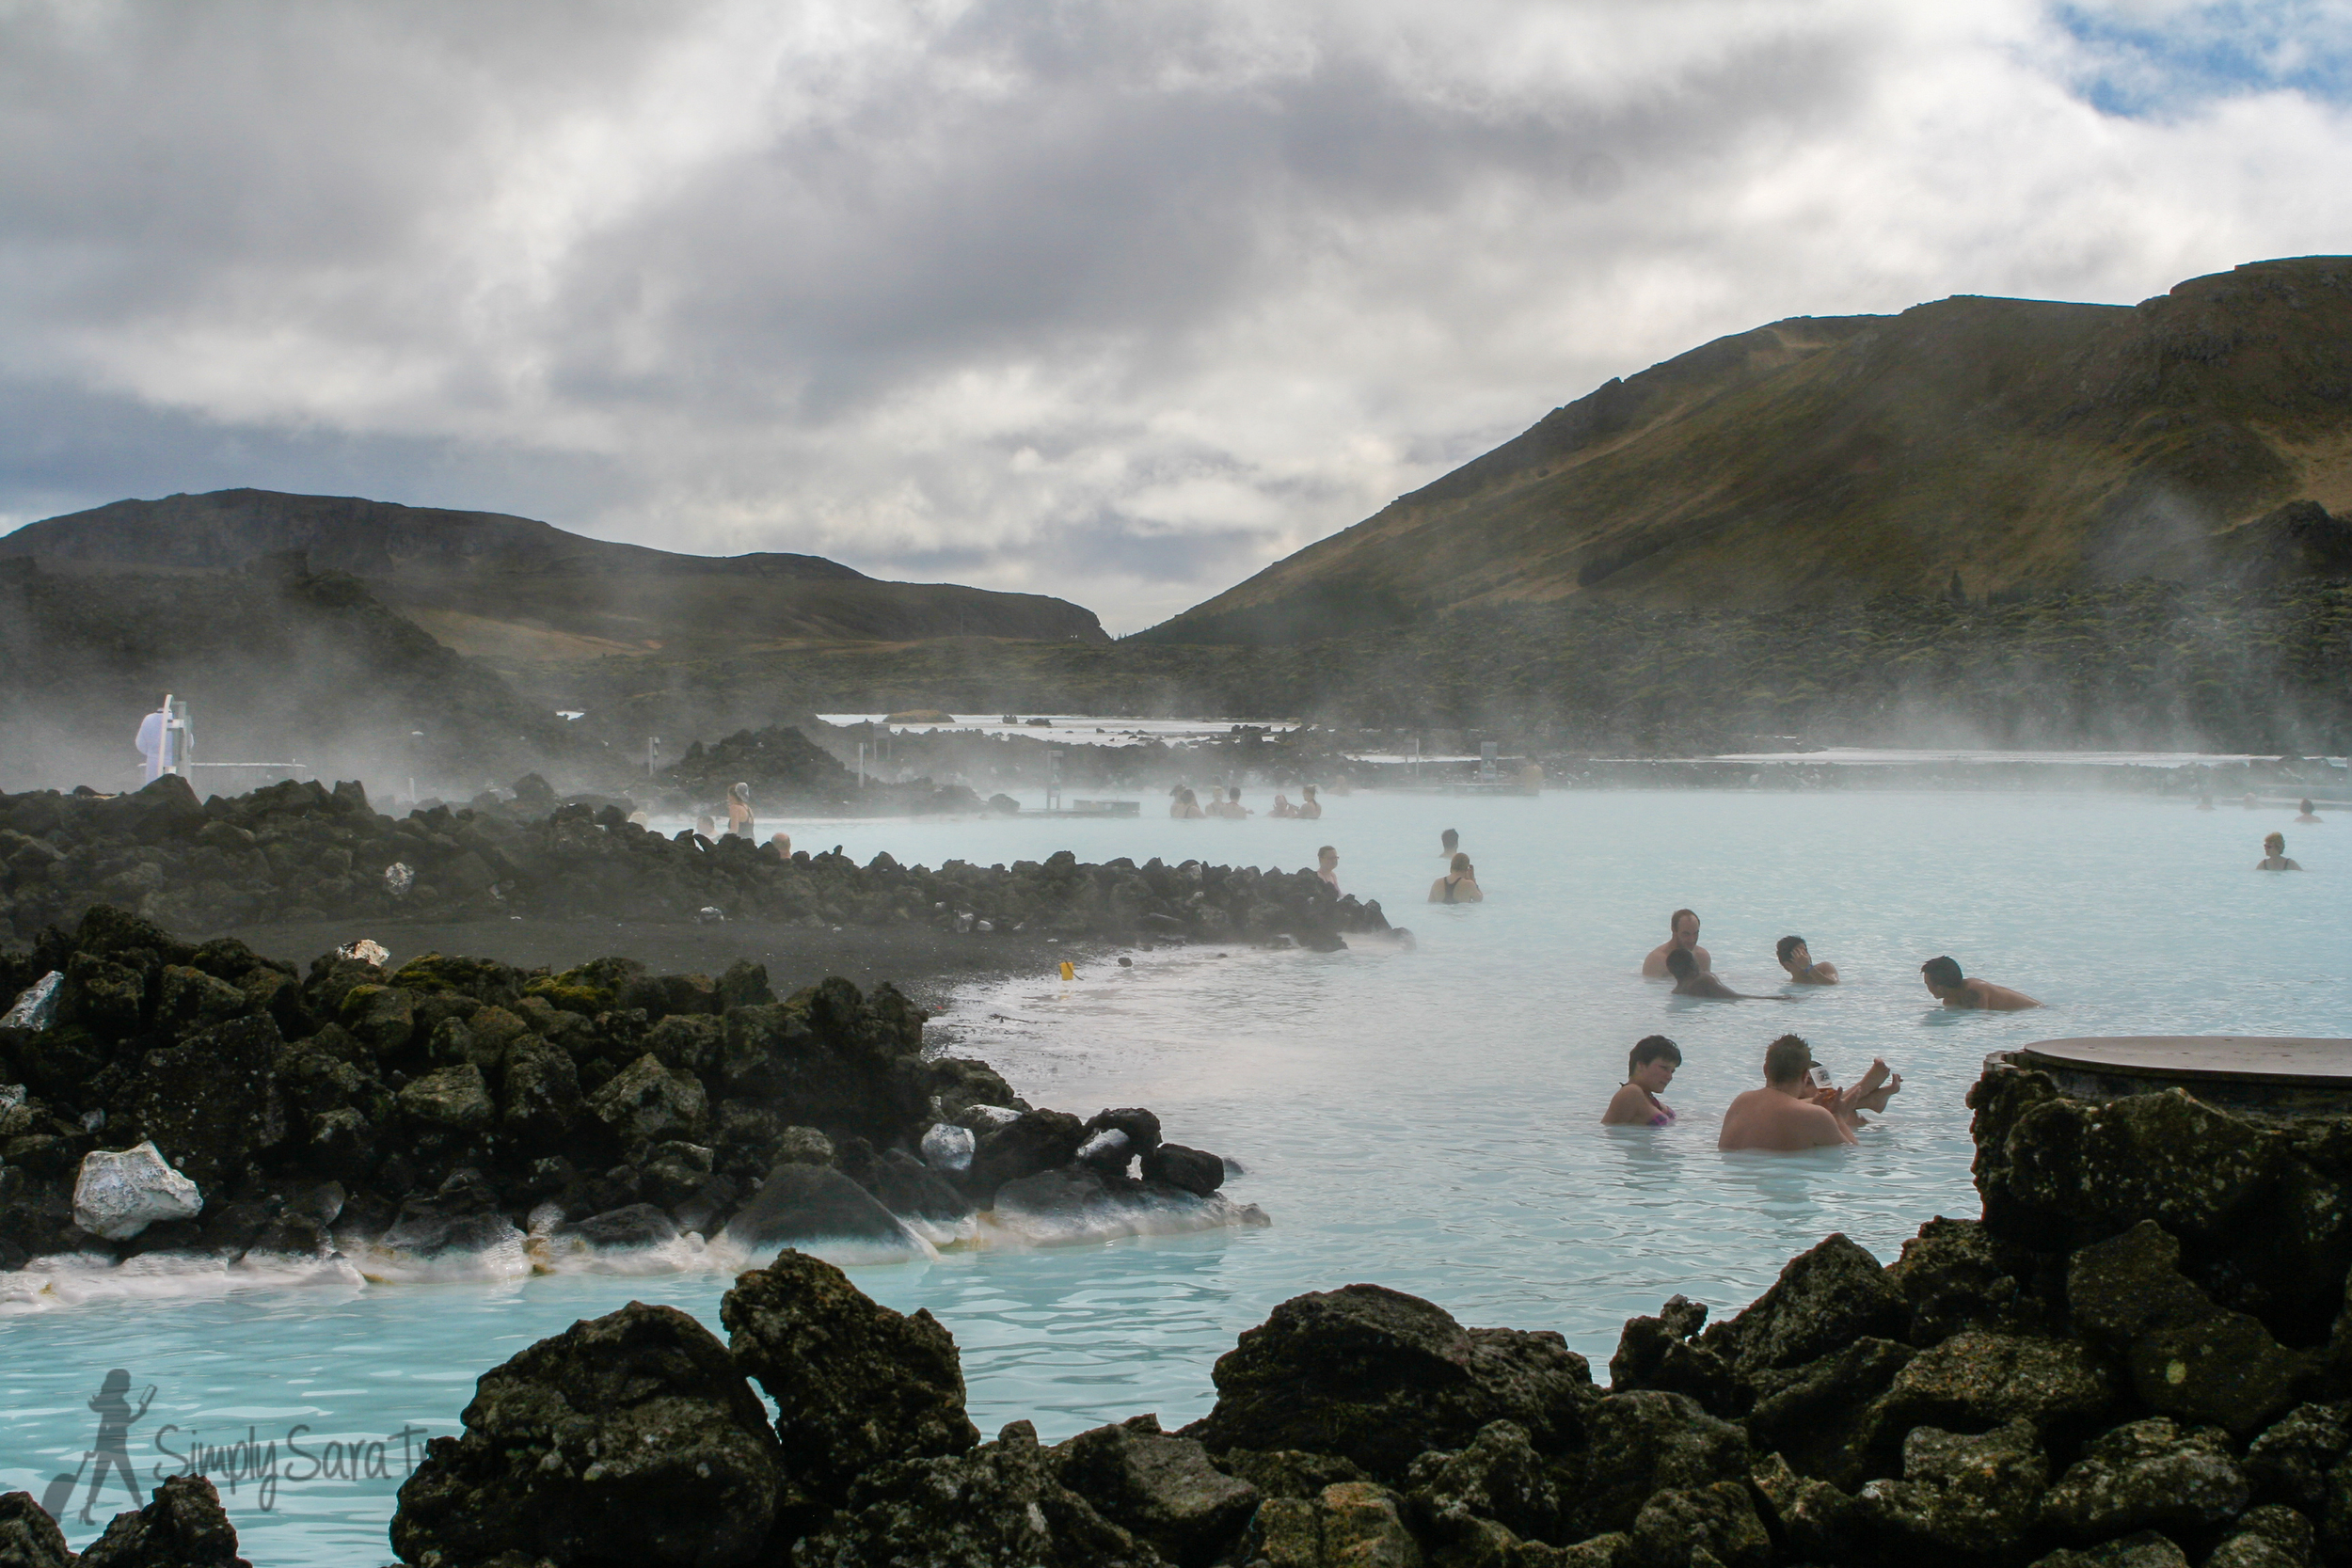 A trip to Iceland must include the  Blue Lagoon , or at least another geothermal pool experience!